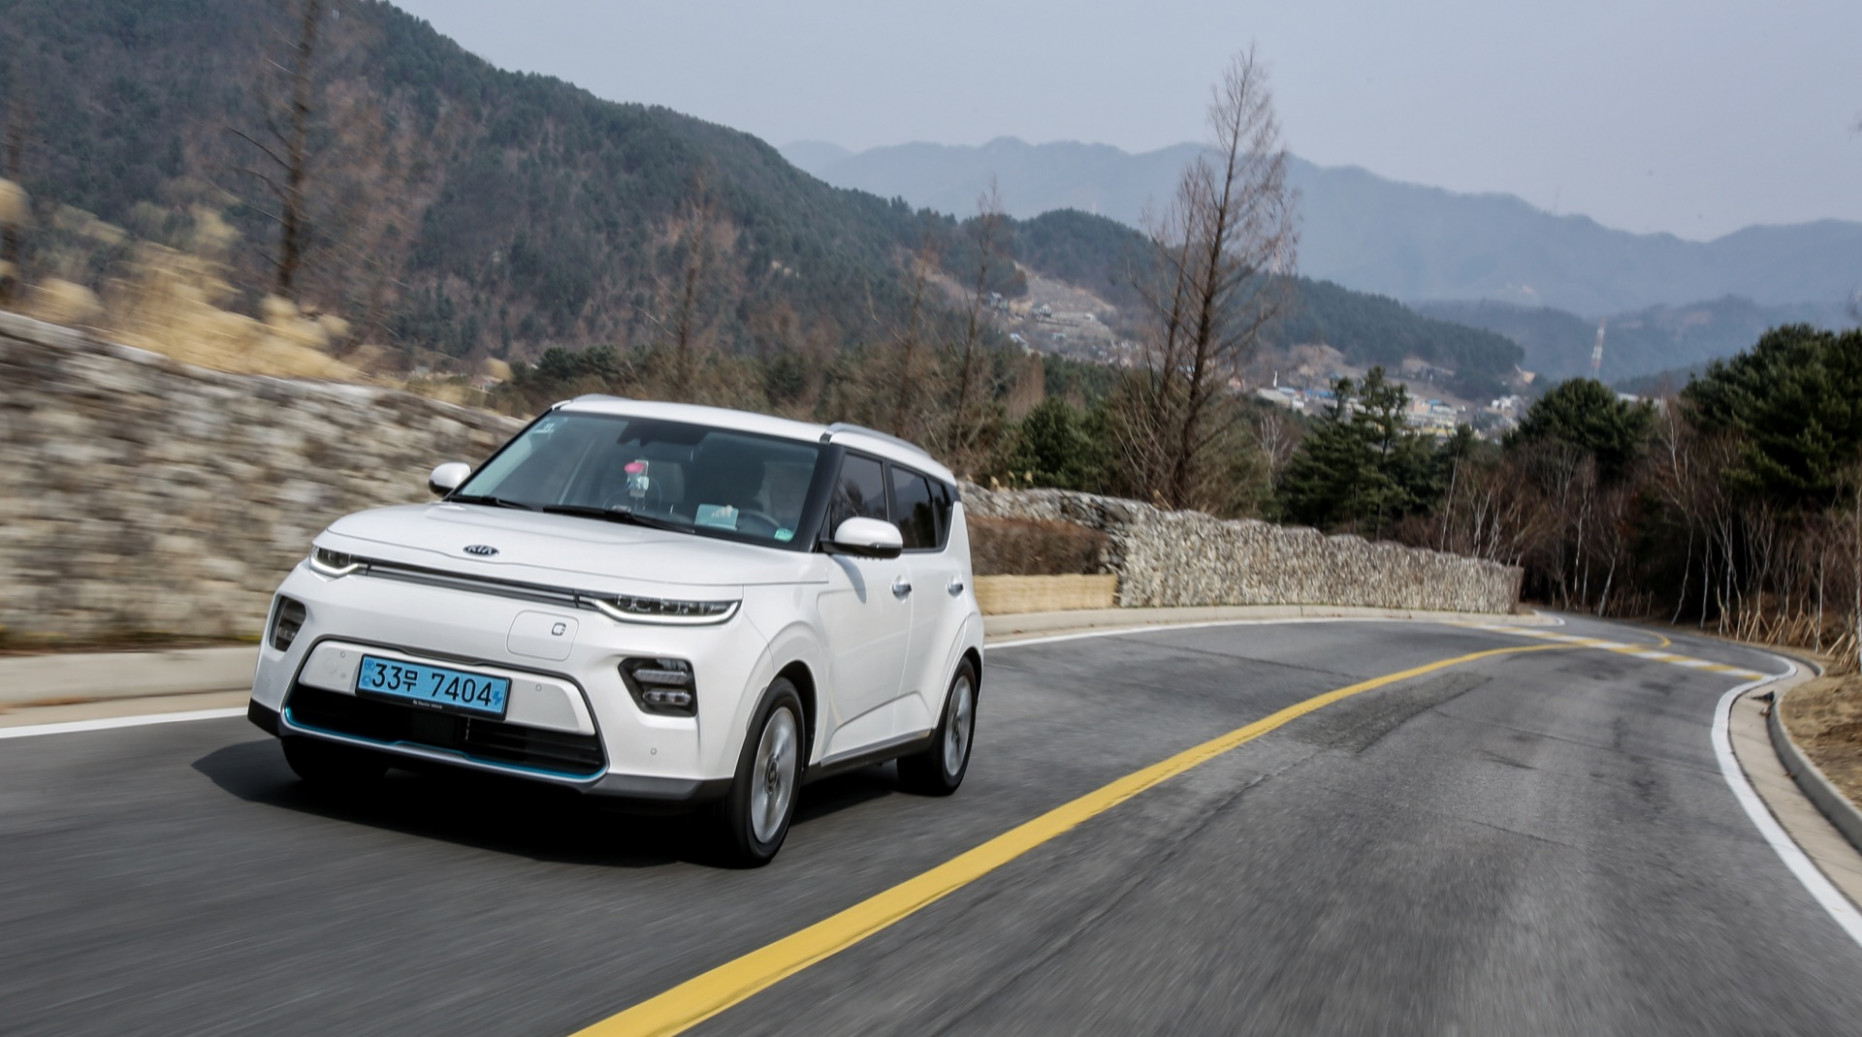 8 Kia Soul EV first drive review: 8 electric miles in the box